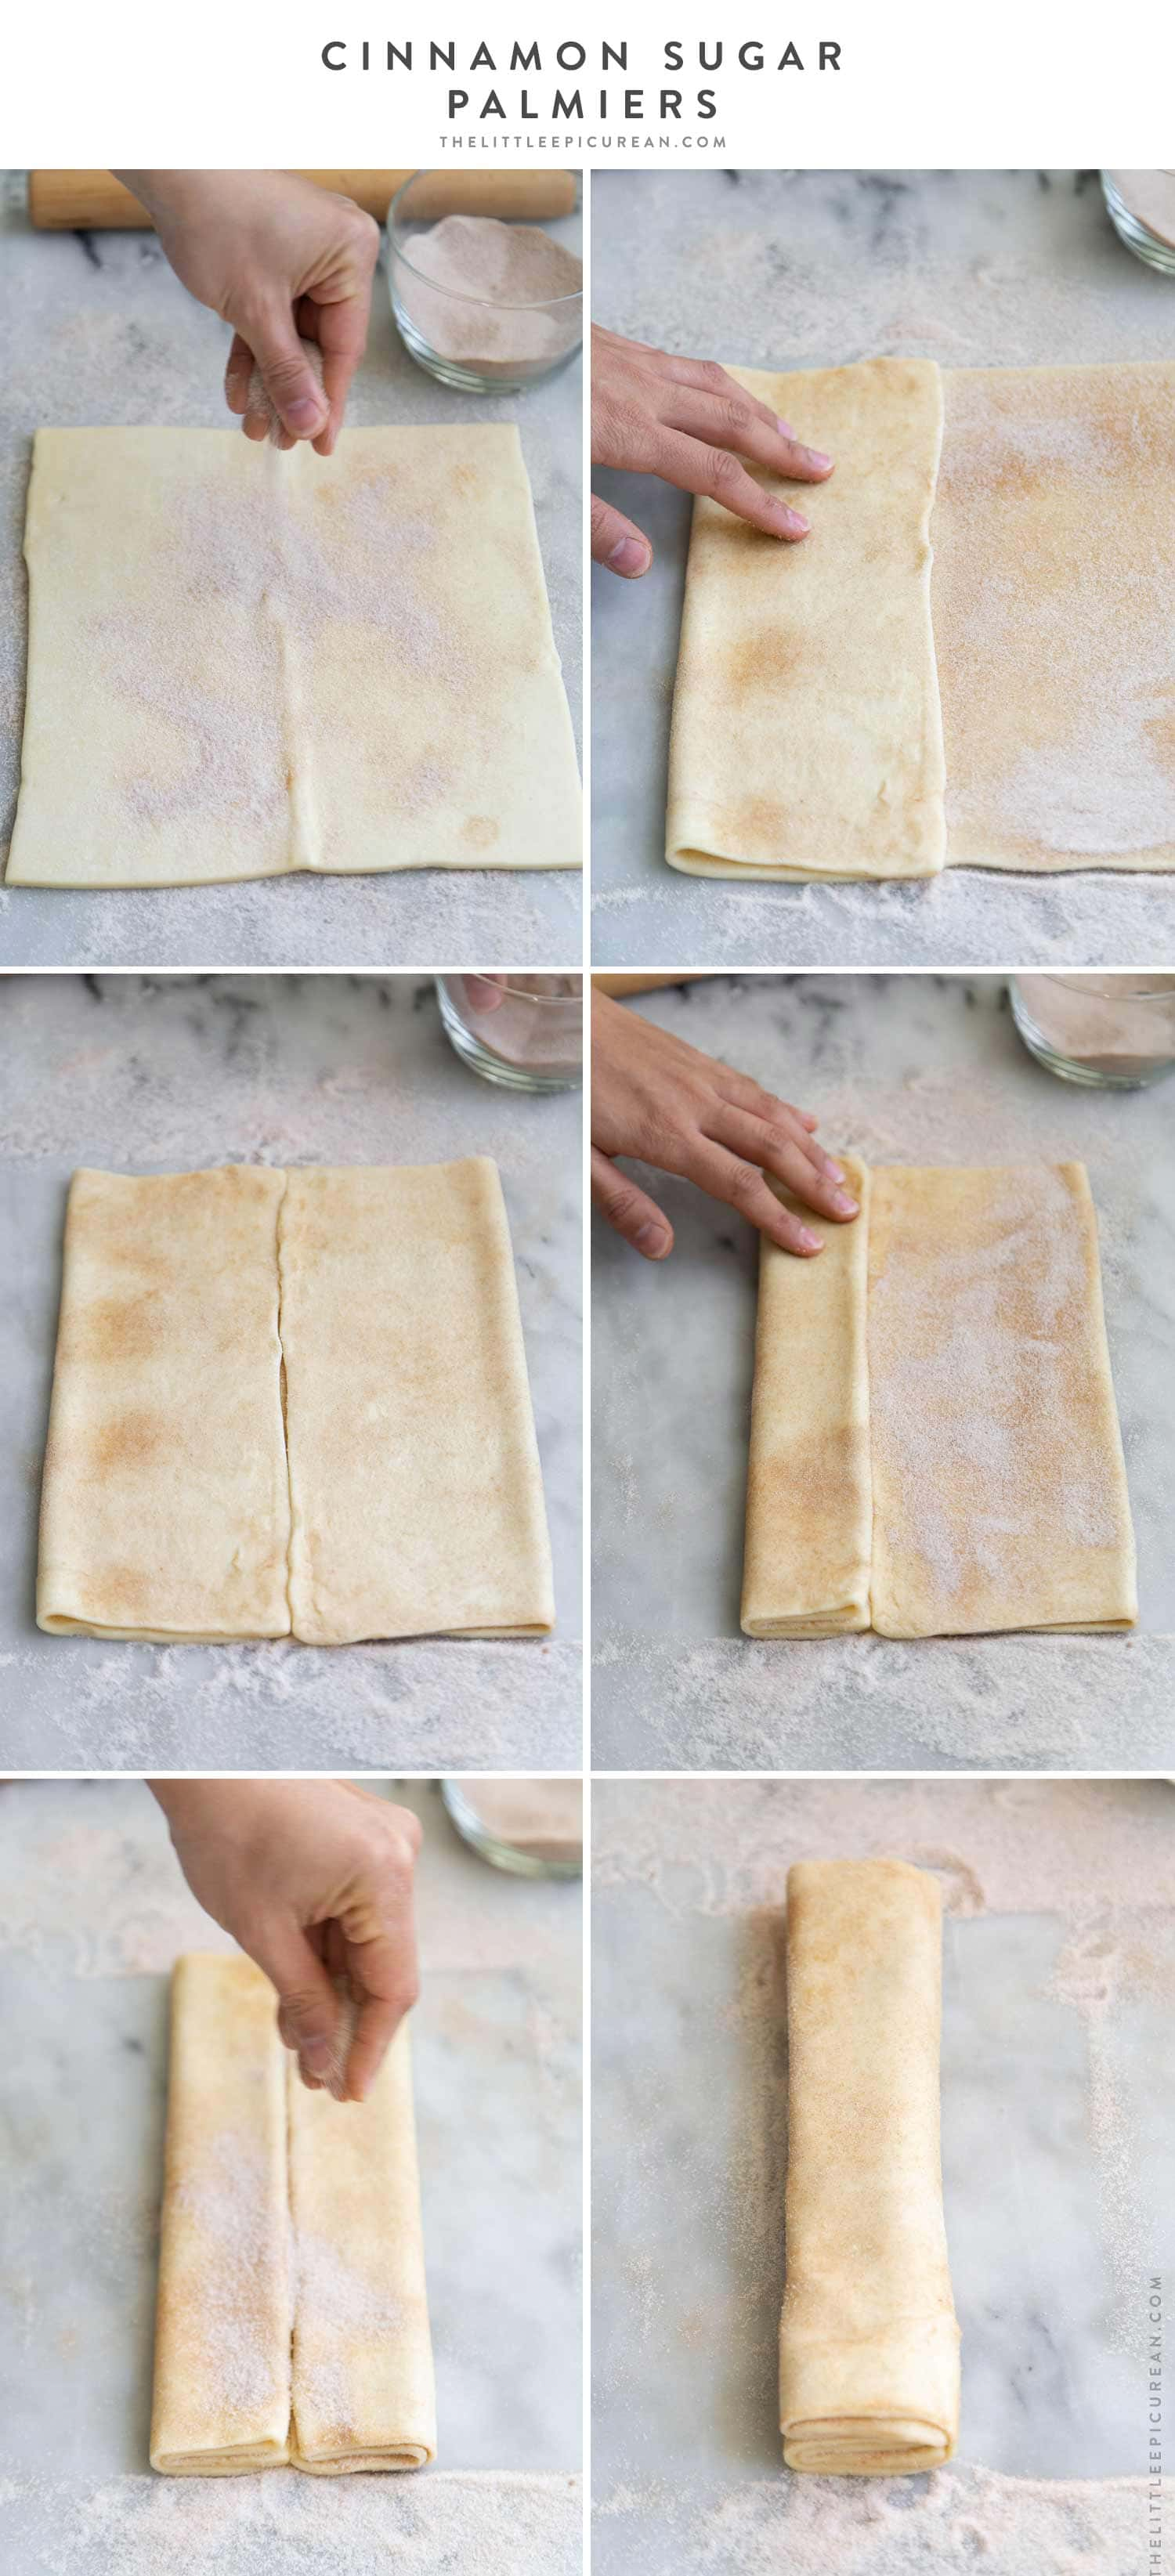 How to assemble Cinnamon Sugar Palmiers using puff pastry dough. #puffpastry #palmiers #easyrecipe #baking #cinnamonsugar